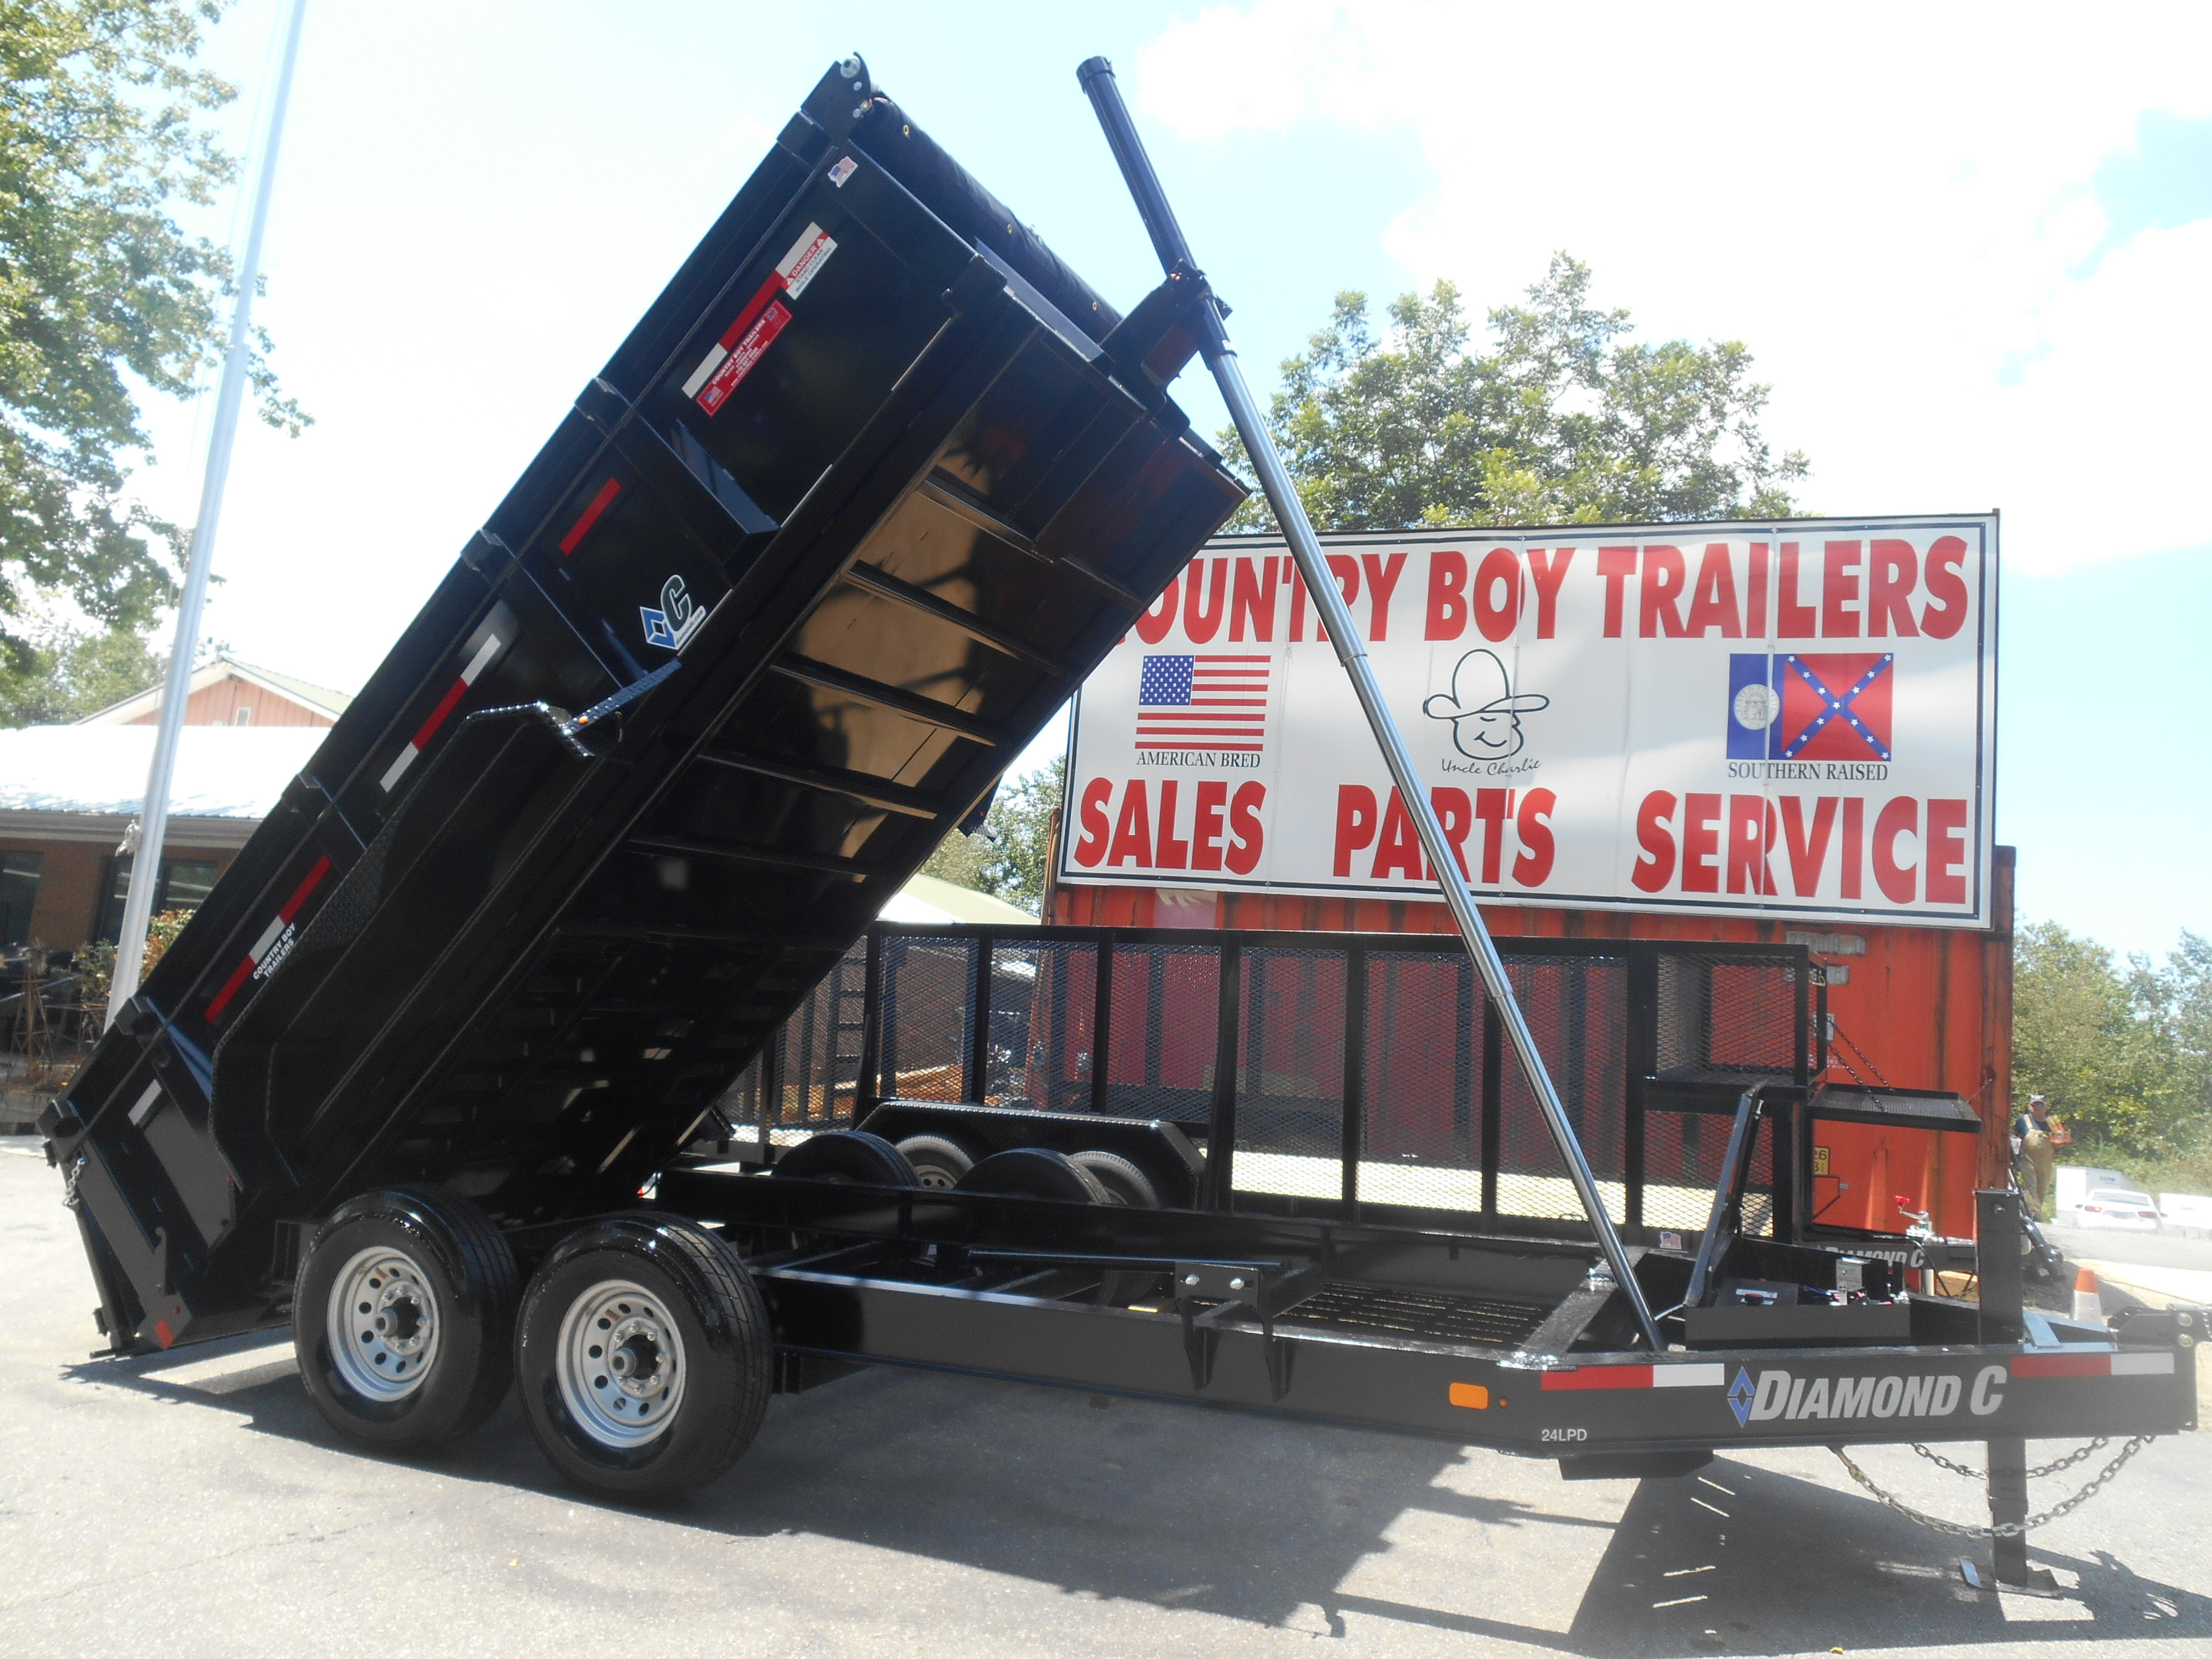 Home Country Boy Trailers We Offer A Huge Selection Of Trailer Brake Controller Wiring On Harbor Freight 24lpd 82x14 Dump W Telescopic Cilinder Gvwr 14900 Lb Weight 4200 Axles 2 7000 E Z Lube Electric Brakes